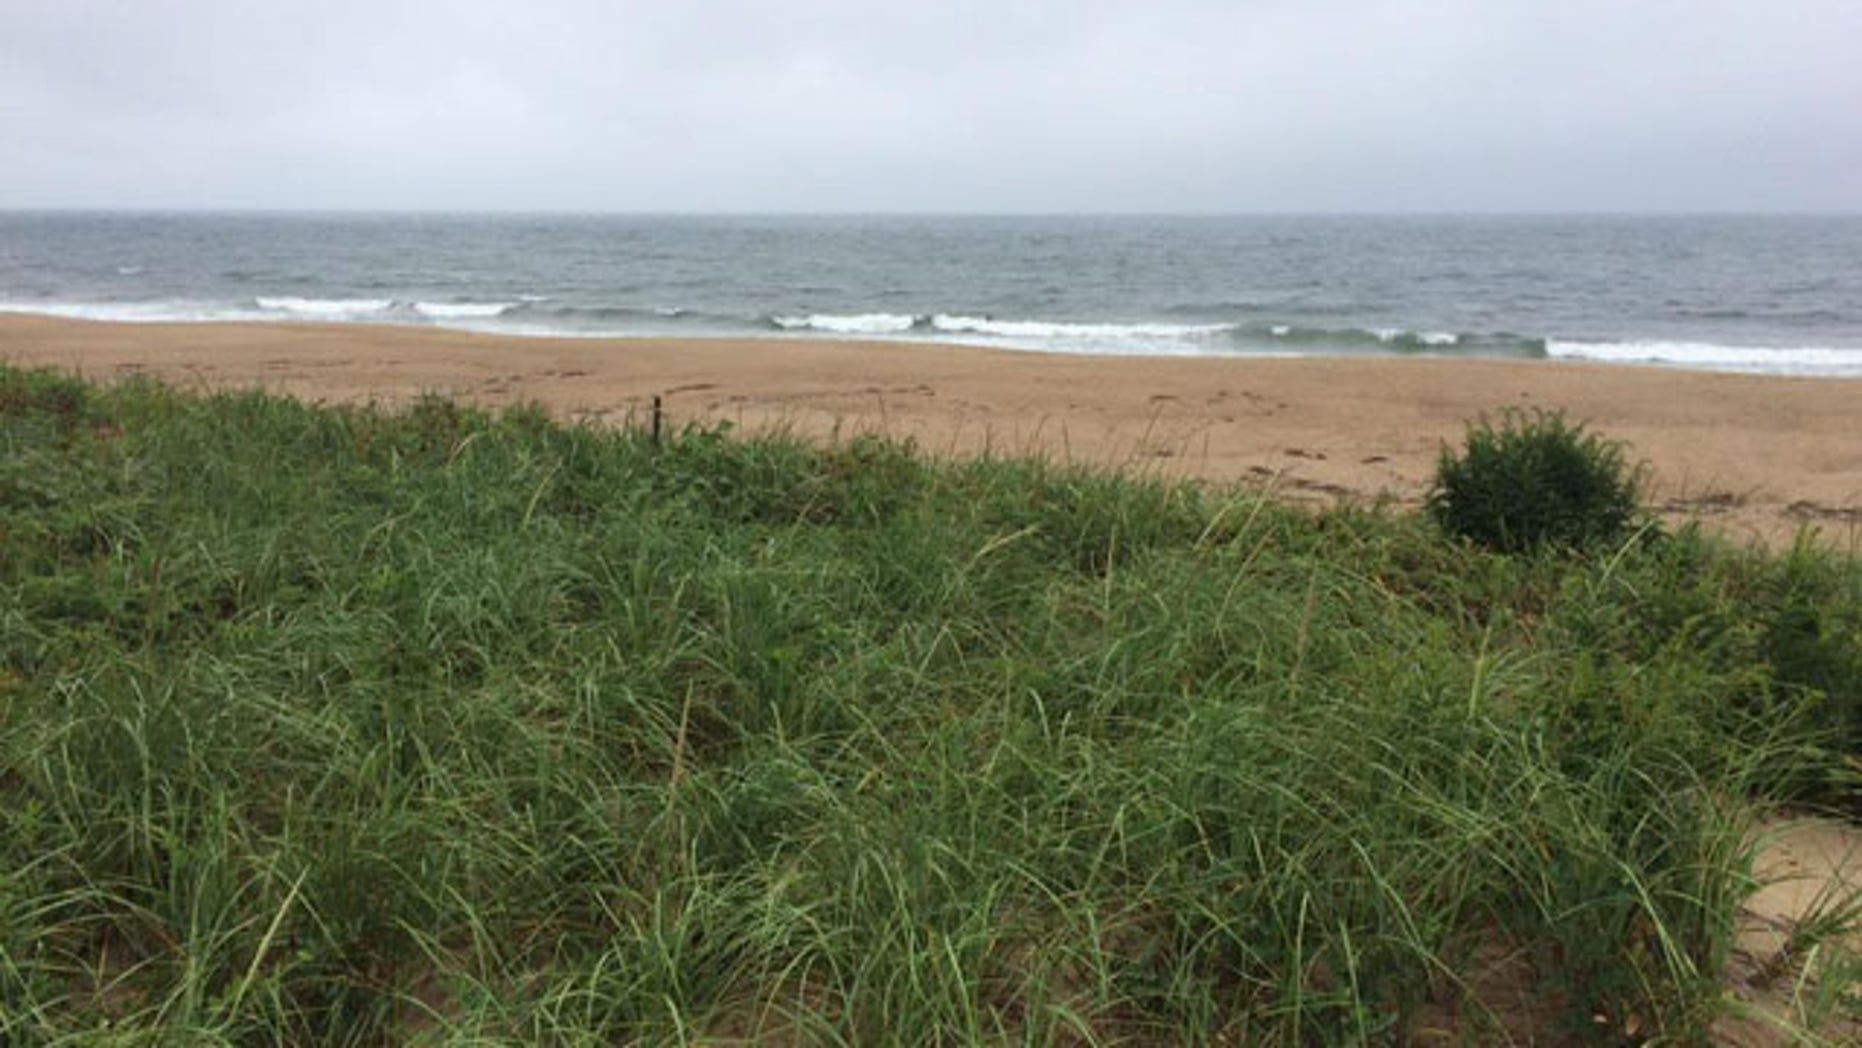 This undated photo shows the beach at Plum Island, Mass., near where a woman's body was discovered Sunday, Aug. 23, 2015: